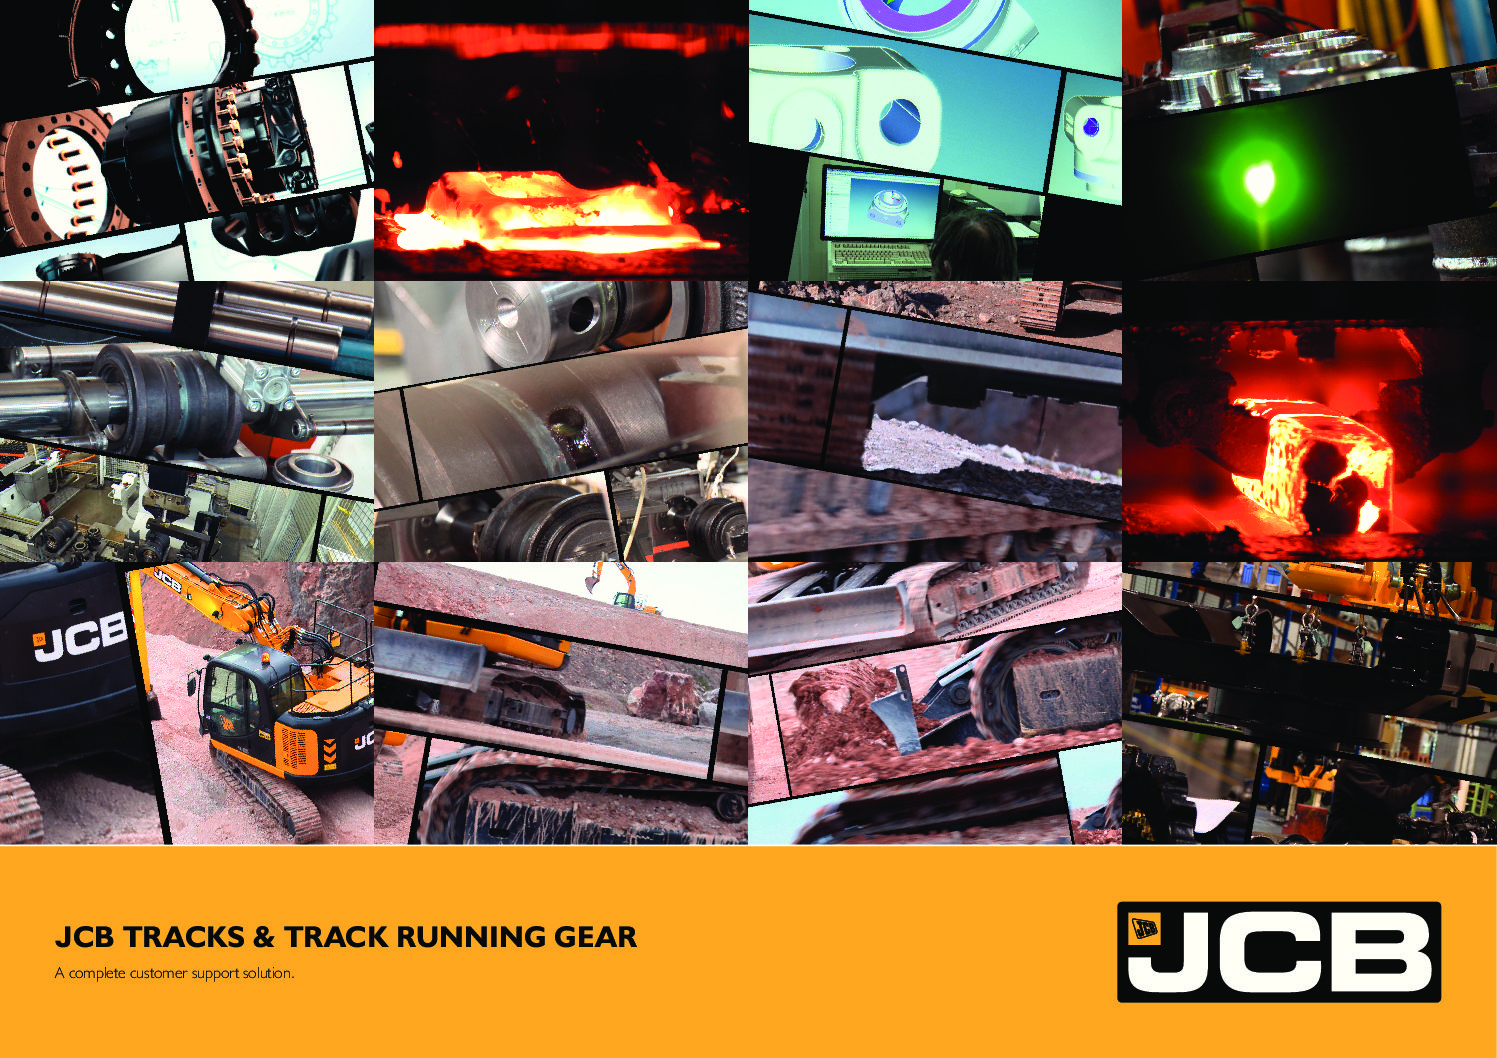 Cover Image of 0448 - JCB WPC Tracks & Running Gear Brochure HR - FINAL